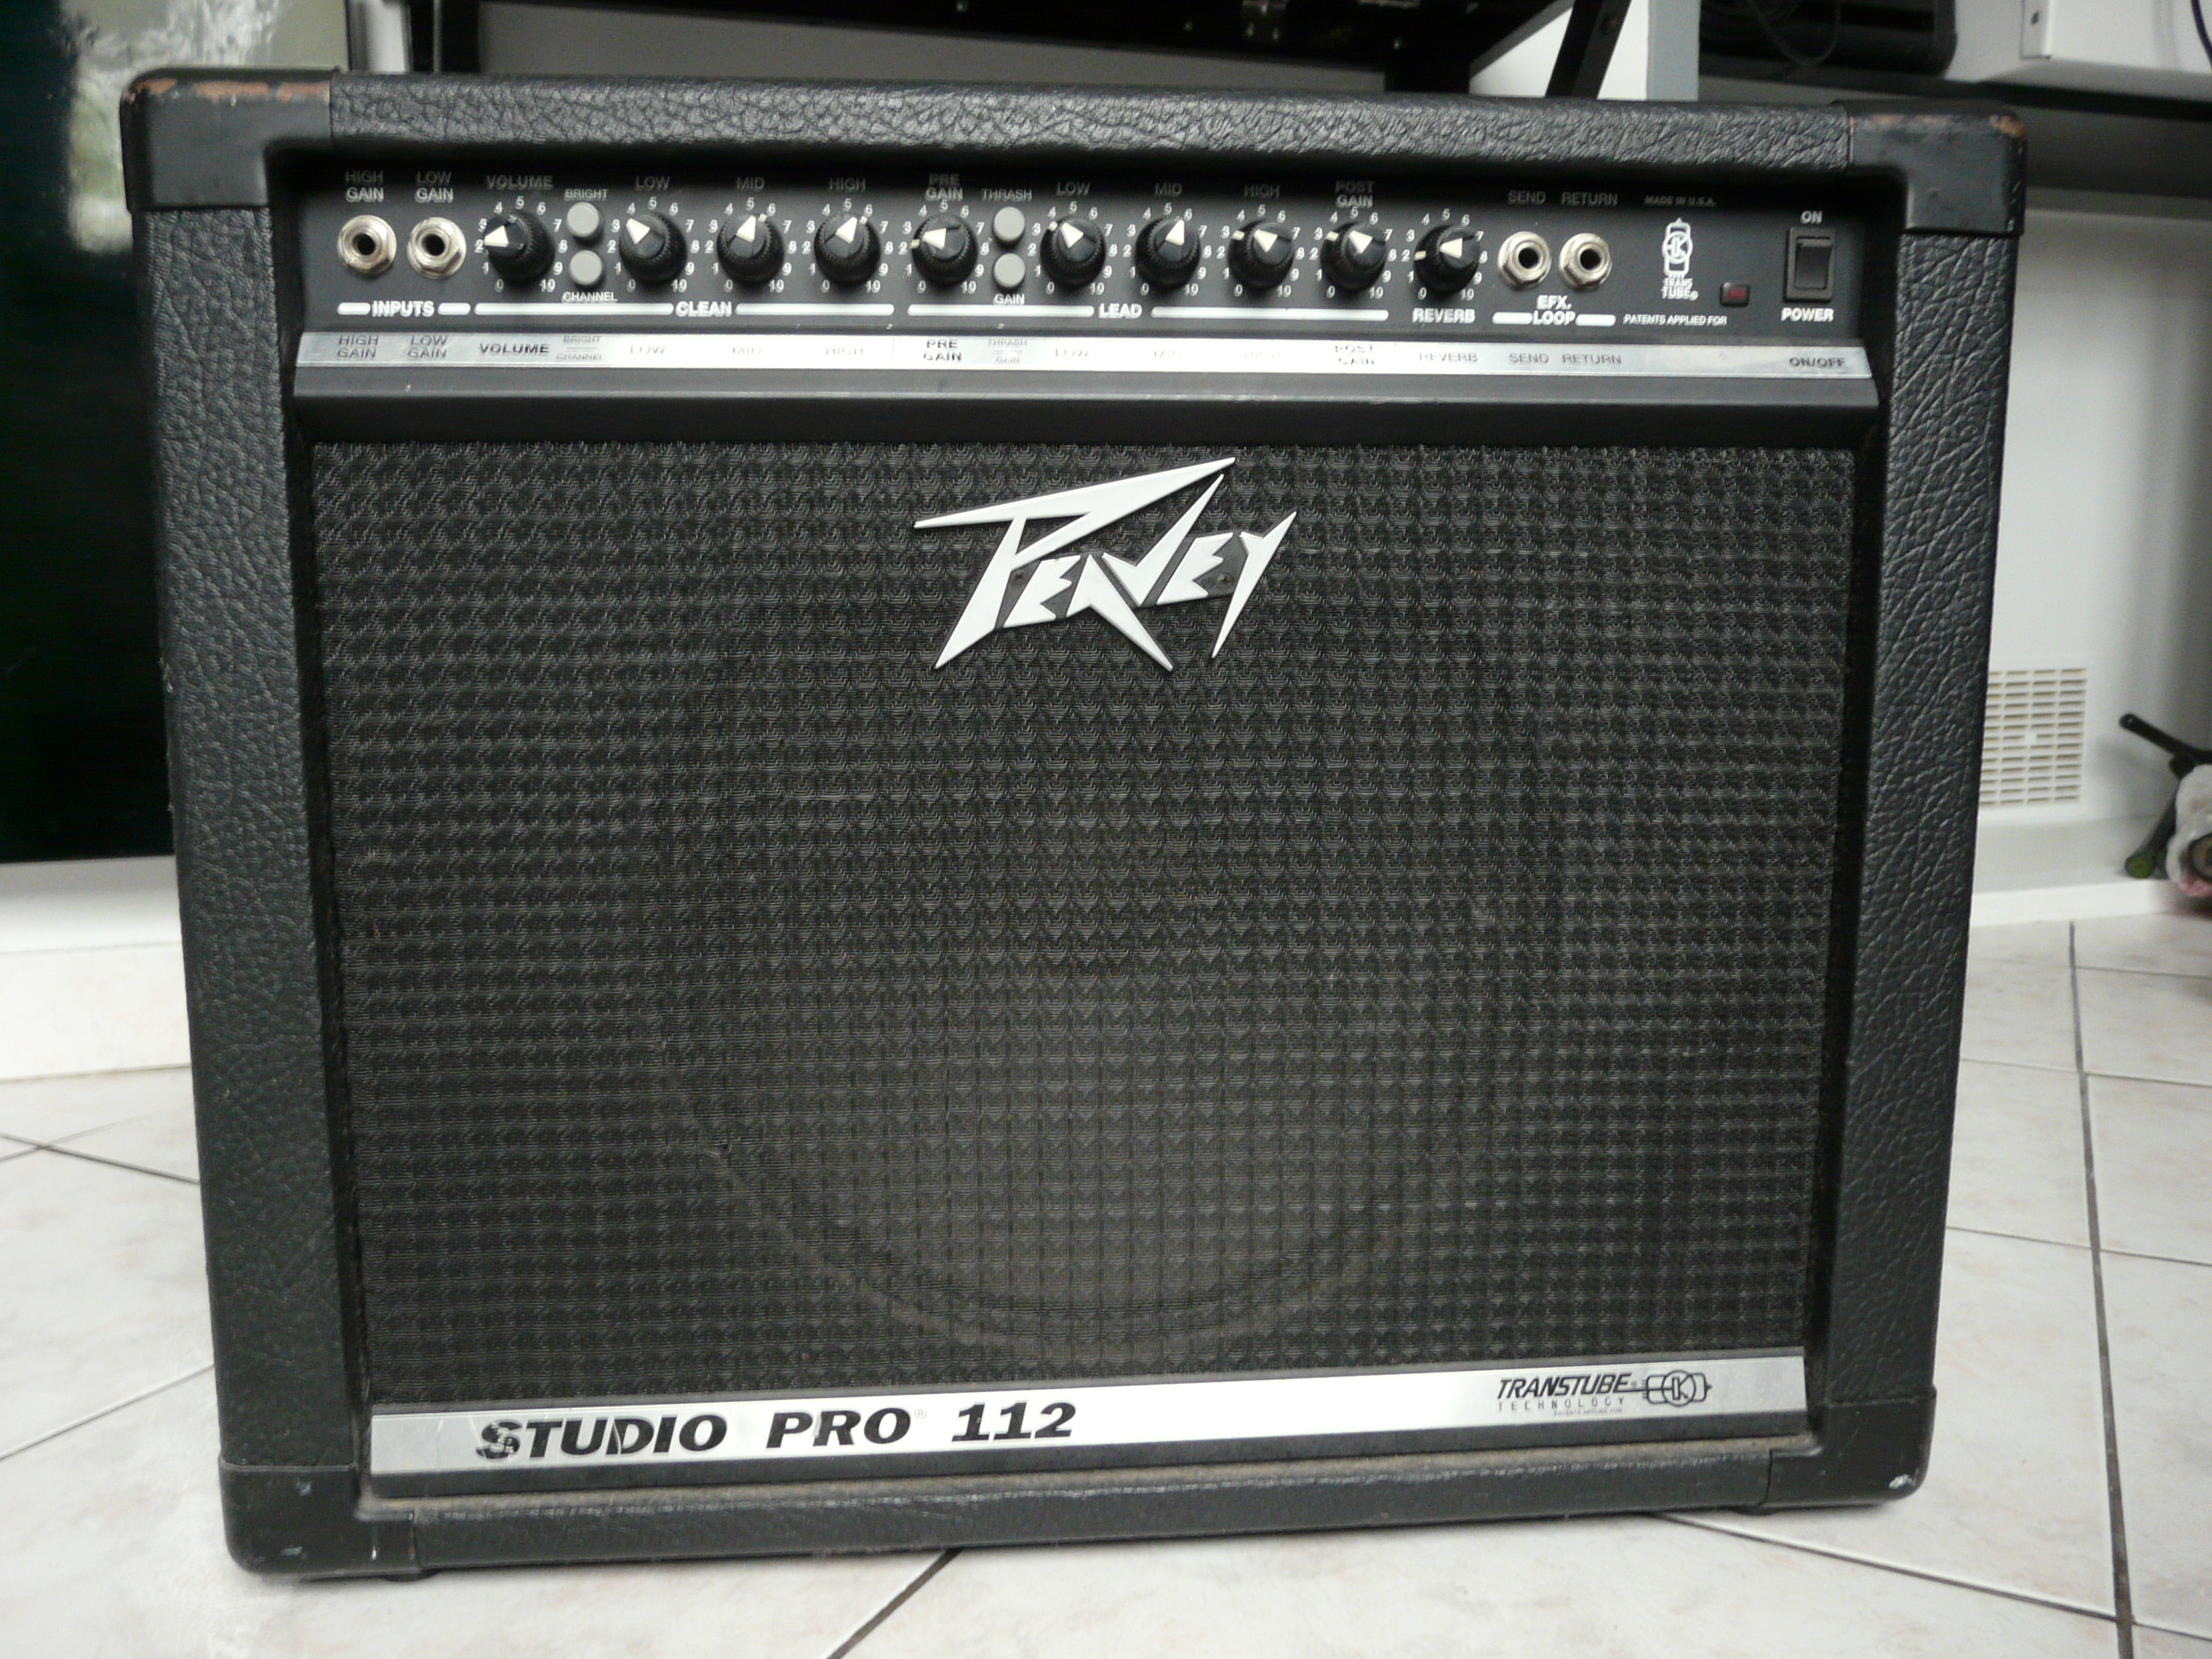 Peavey transtube 112 efx review-6718